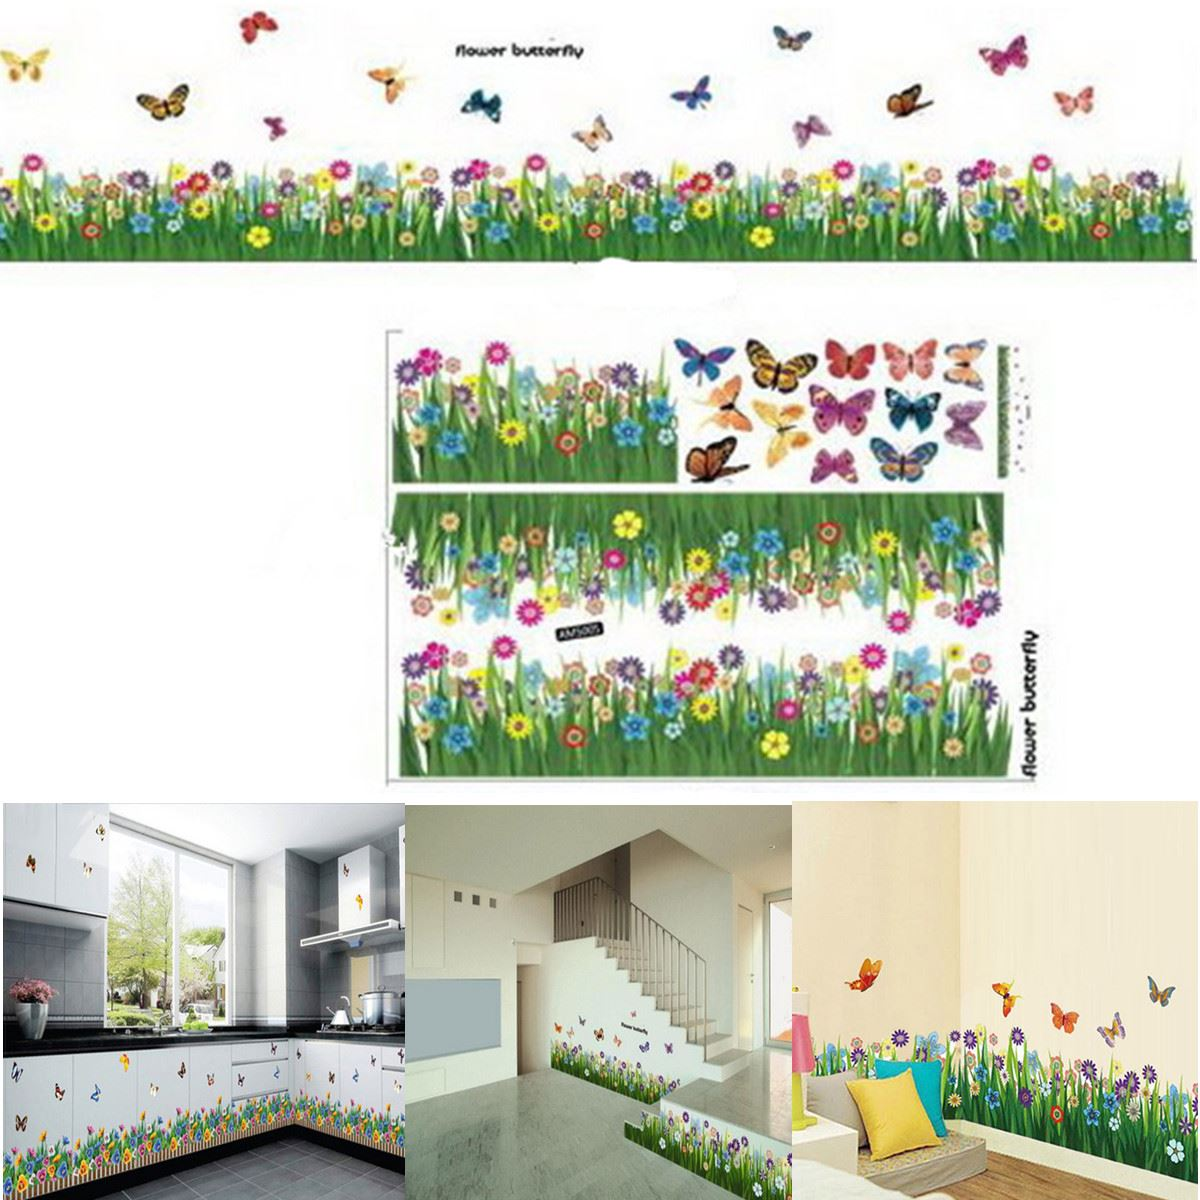 Best Price Romantic Design DIY Flower Butterfly Underbrush Window Kid Room Removable Wall Stickers Decal Home Decor Decoration(China (Mainland))